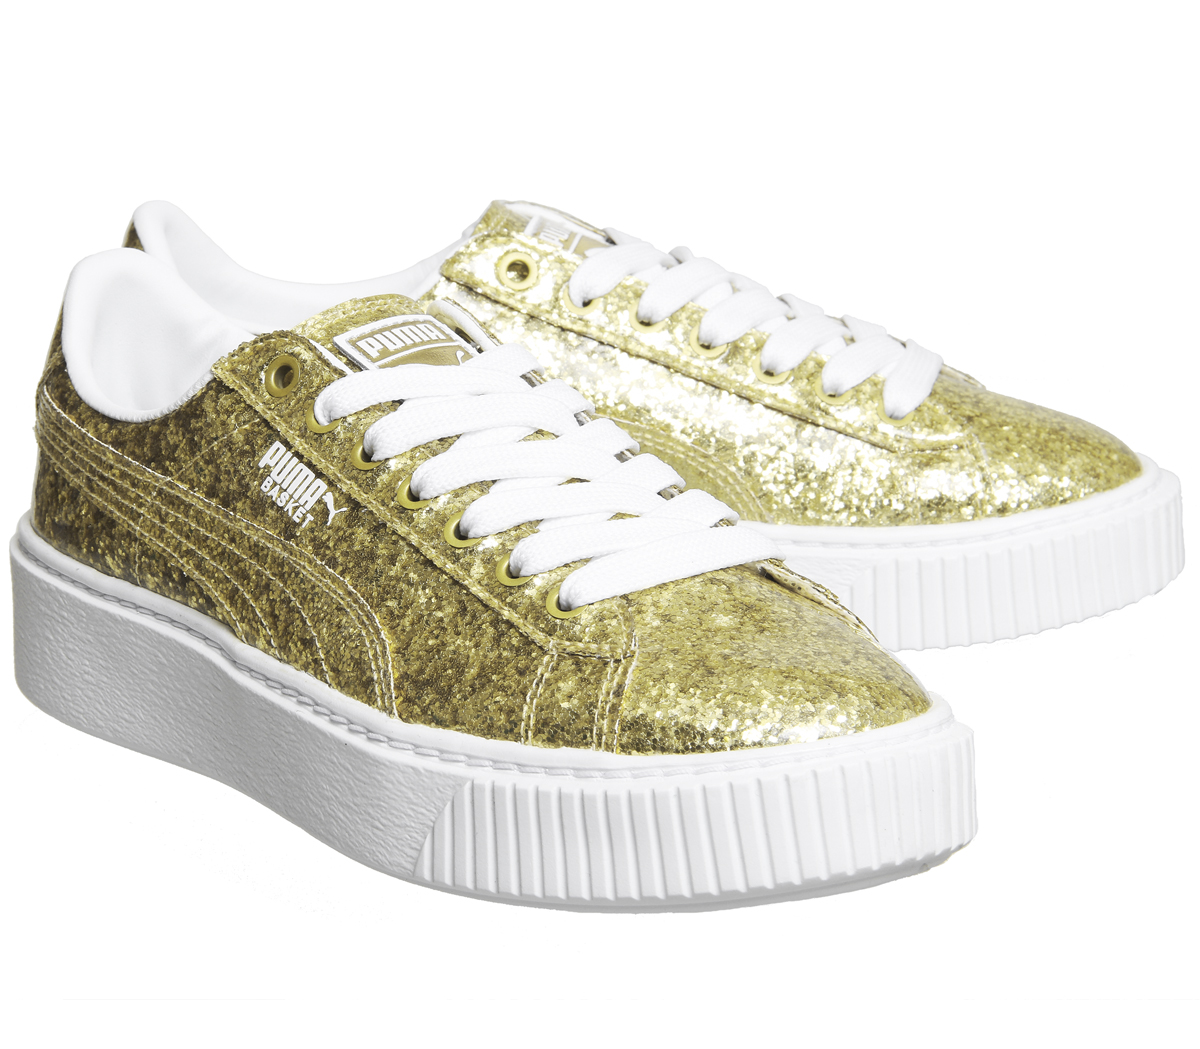 1eea30a52509b Womens Puma Basket Platform Trainers Gold Glitter White Trainers ...